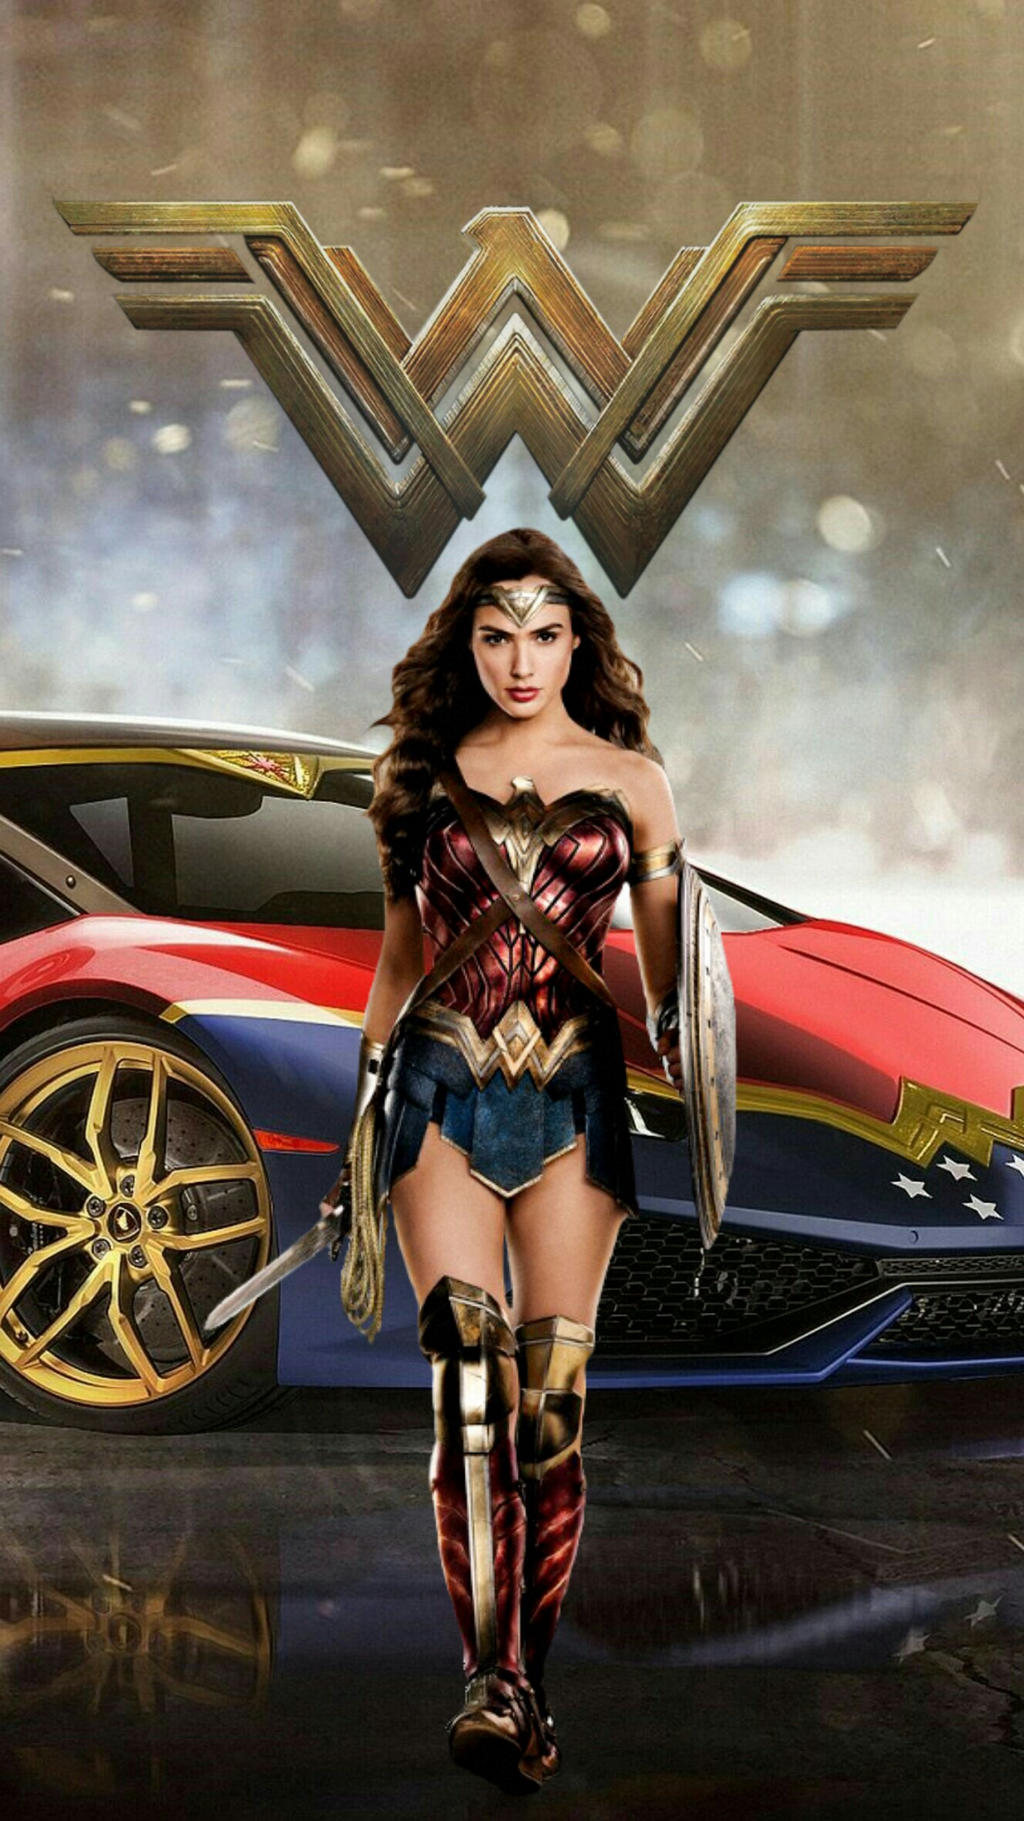 Wonder Woman Her Bugatti Mobile Wallpaper By Supermansdad79 On